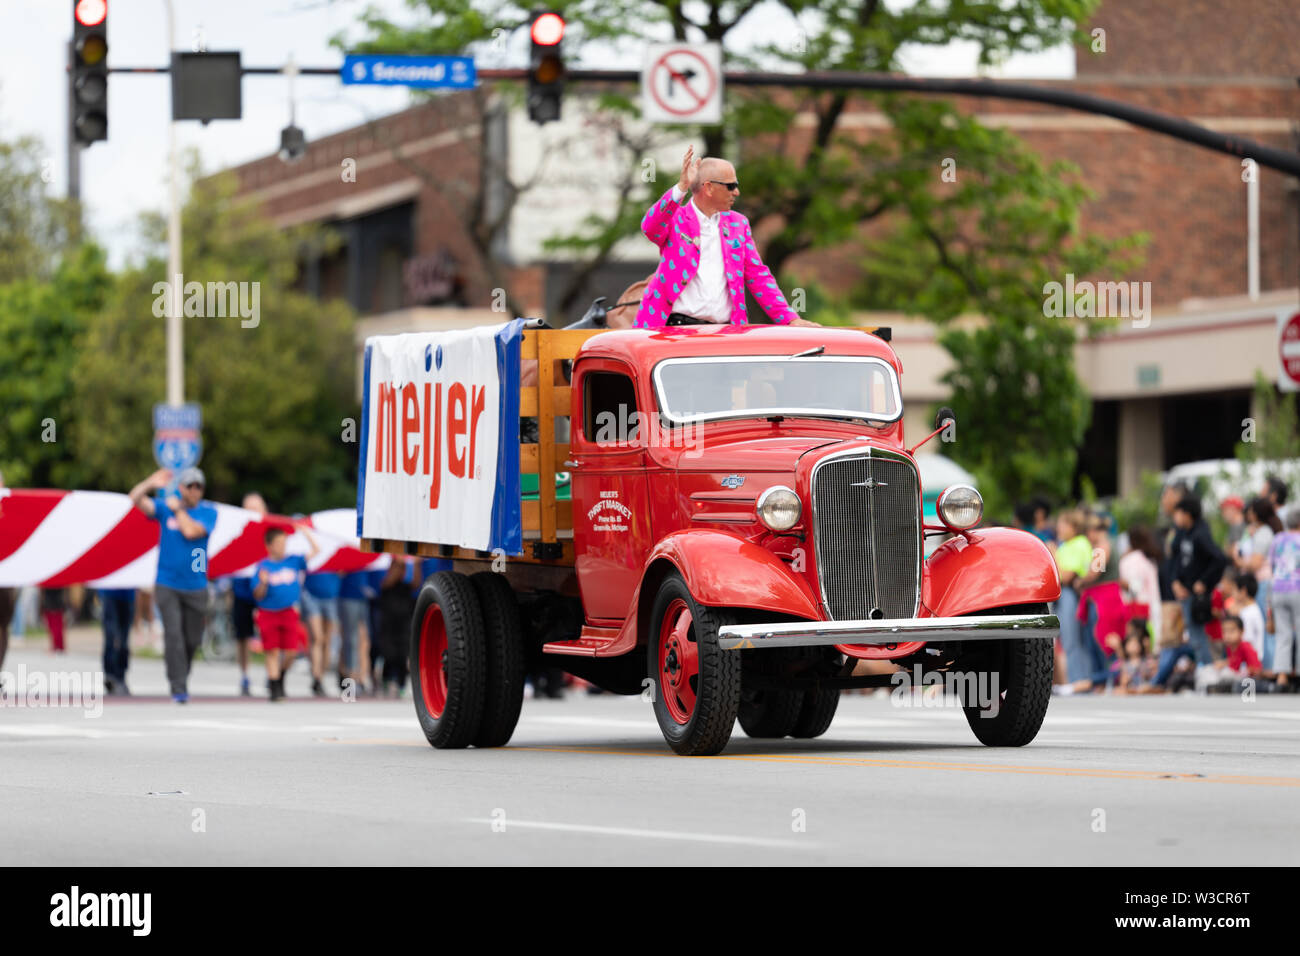 Louisville, Kentucky, USA - May 2, 2019: The Pegasus Parade, Old Meijer truck, promoting Meijer during the parade - Stock Image